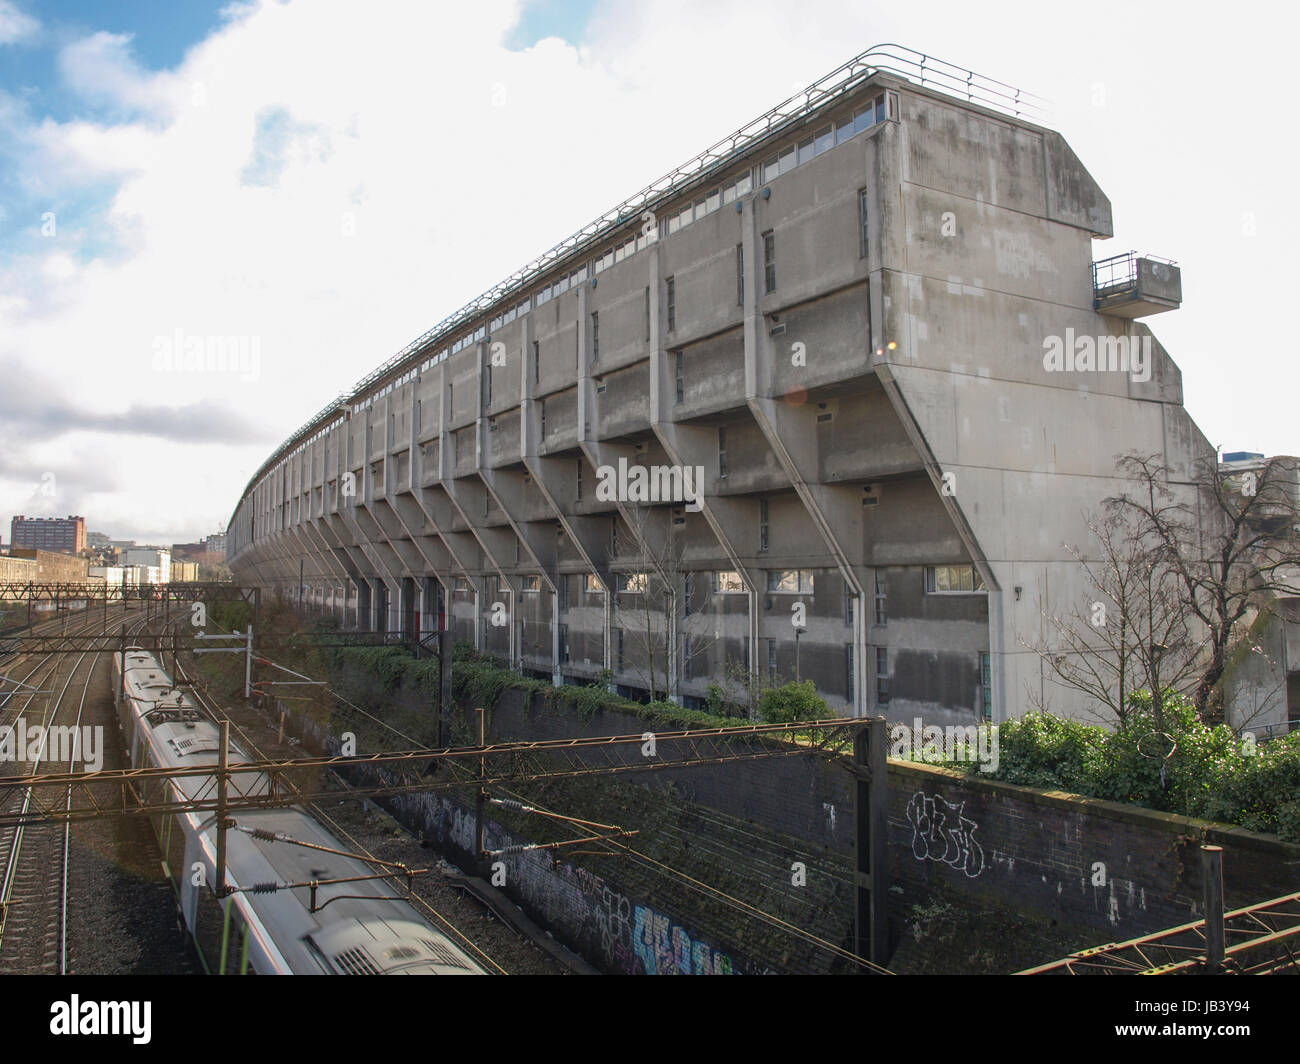 LONDON, ENGLAND, UK - MARCH 04, 2009: The Alexandra Road estate designed in 1968 by Neave Brown applies the terraced Stock Photo